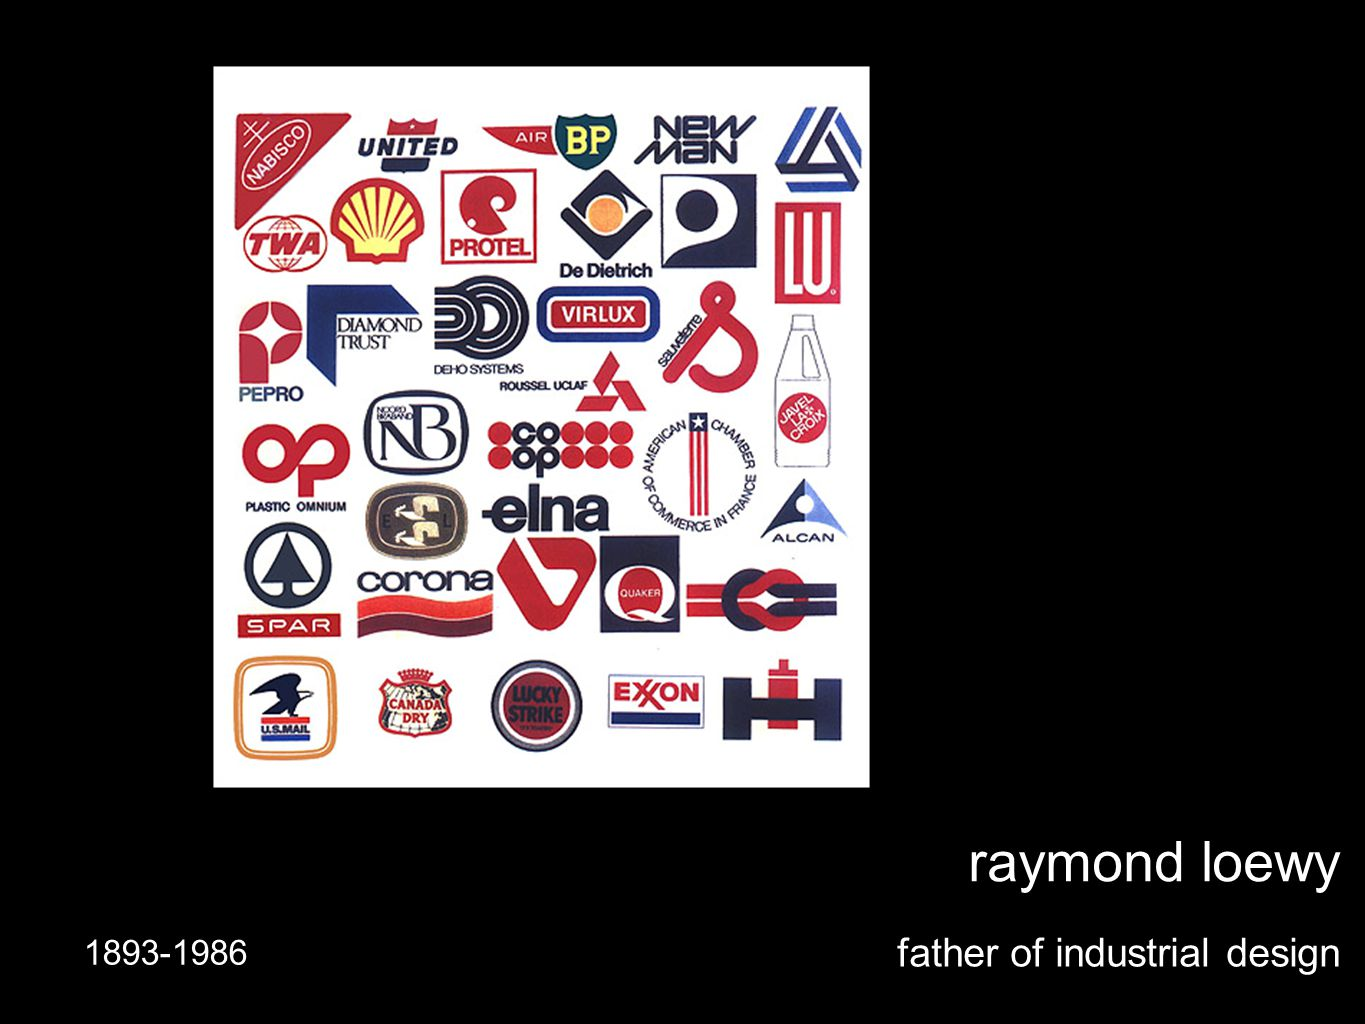 raymond loewy father of industrial design 1893-1986